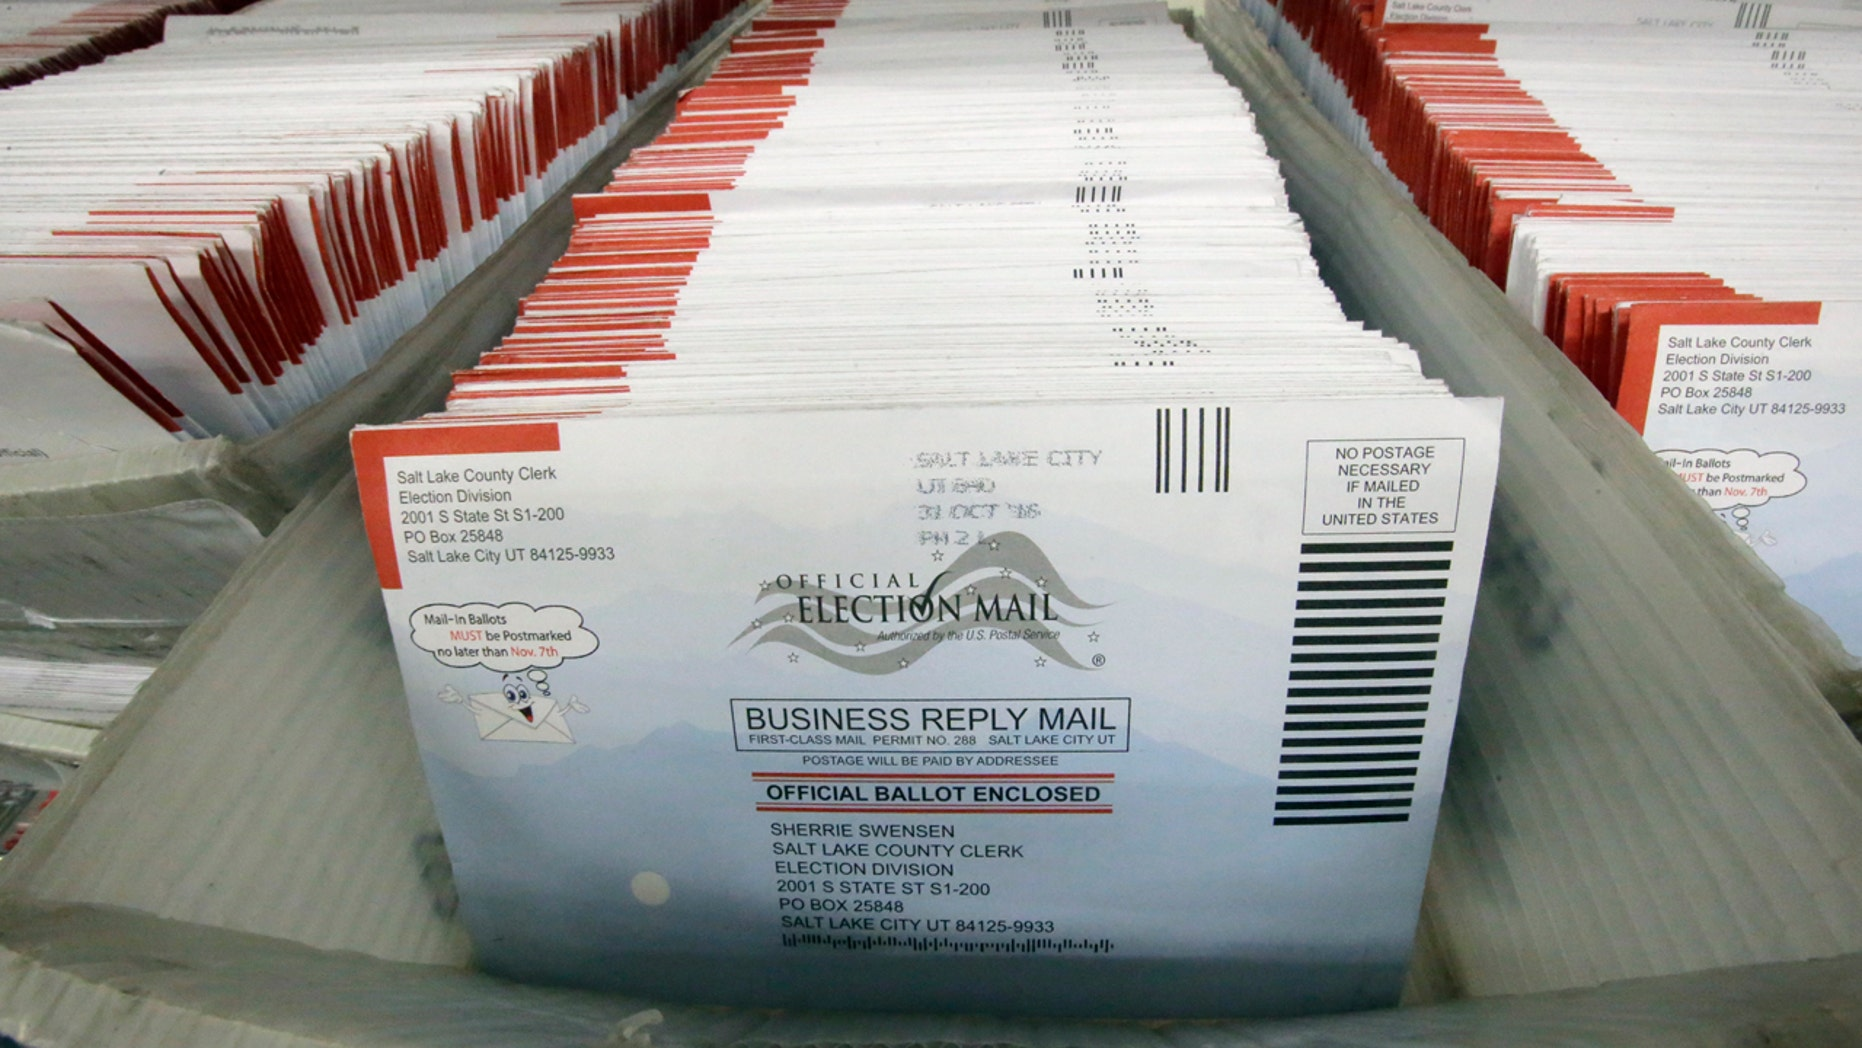 Mail-in ballots for the 2016 General Election are shown at the elections ballot center at the Salt Lake County Government Center Tuesday, Nov. 1, 2016, in Salt Lake City.